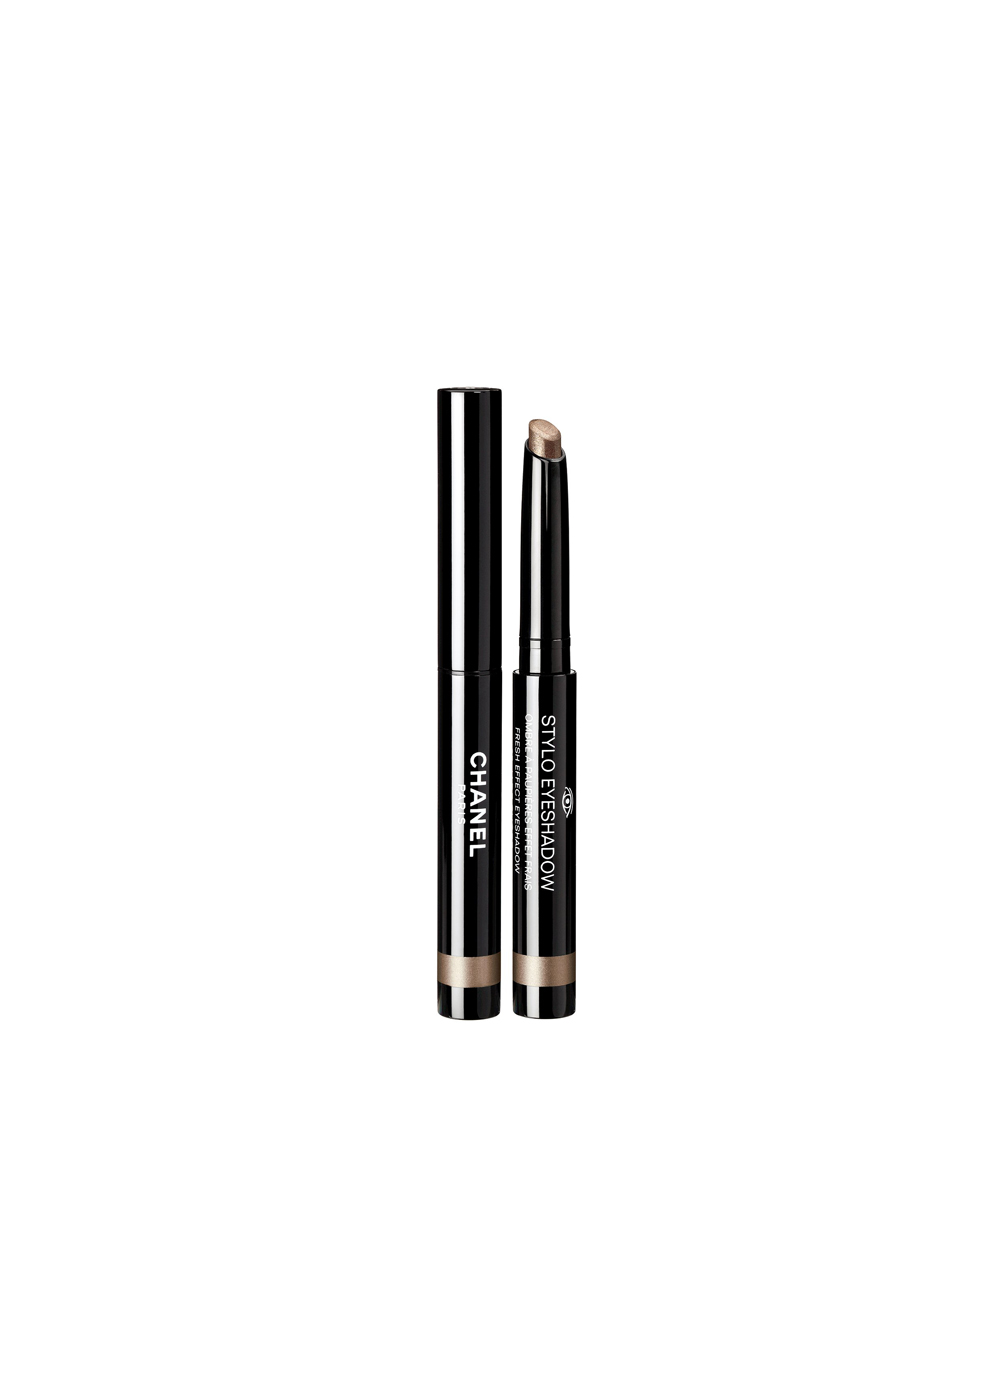 Stylo Eyeshadow, Chanel